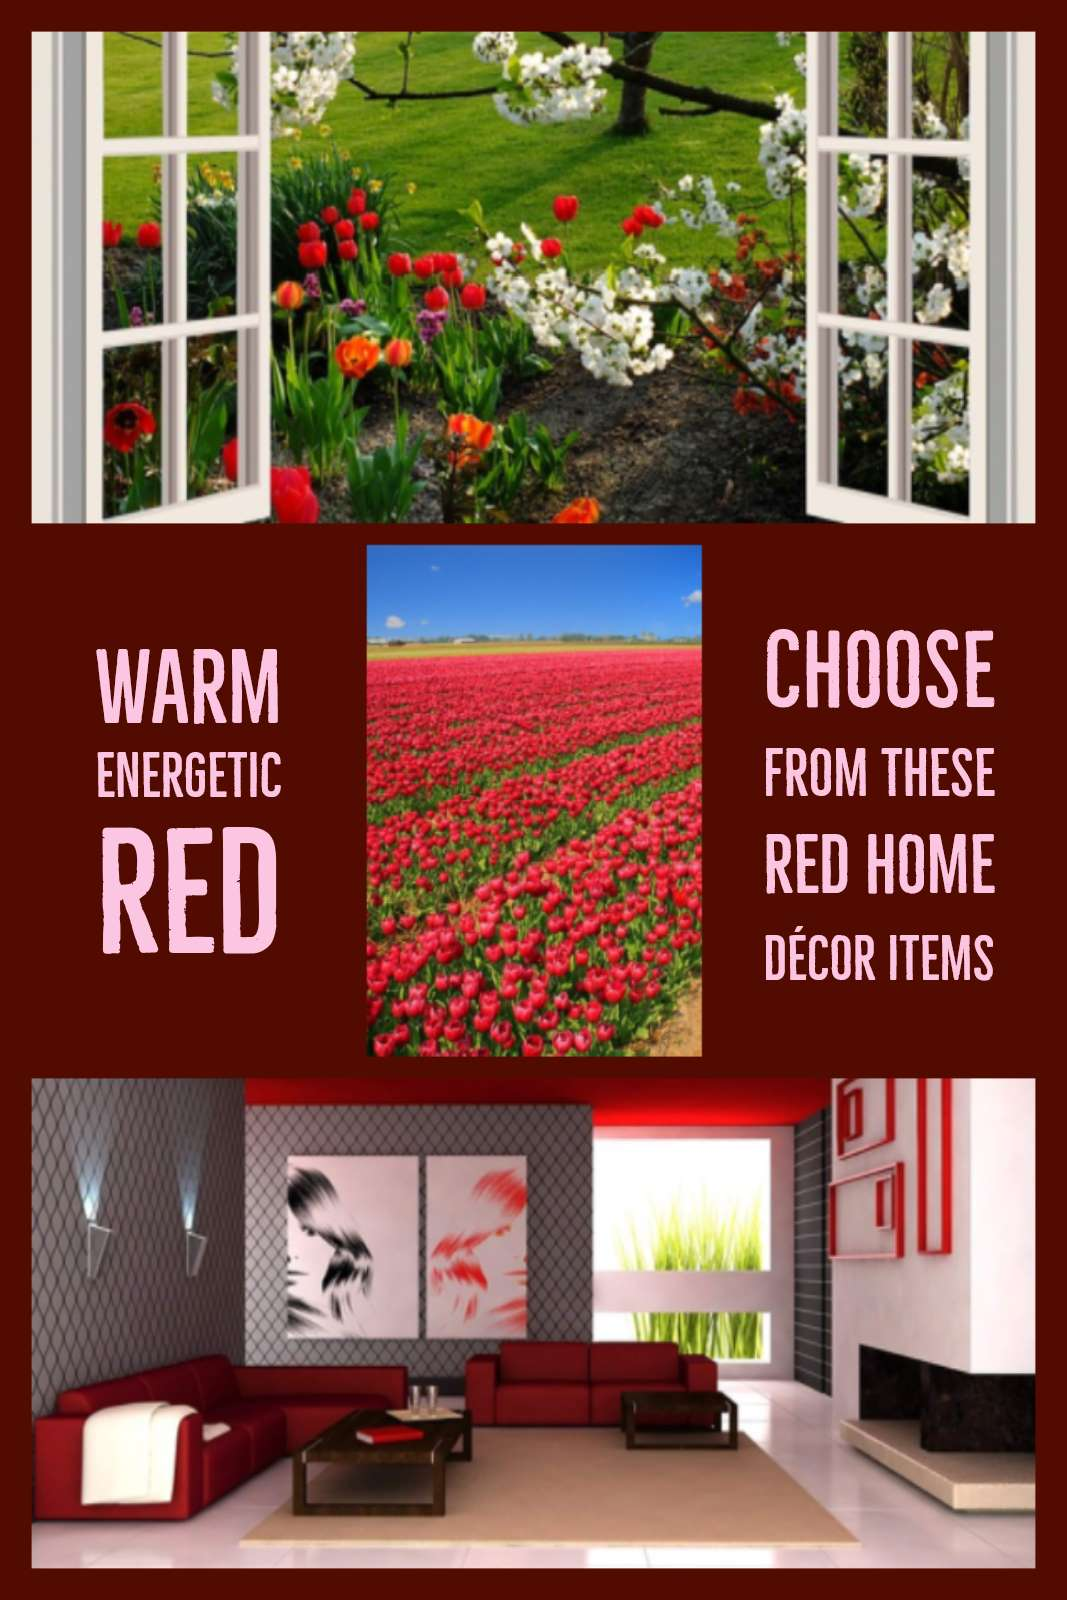 Green Home Decor Items Red Home Decor Items